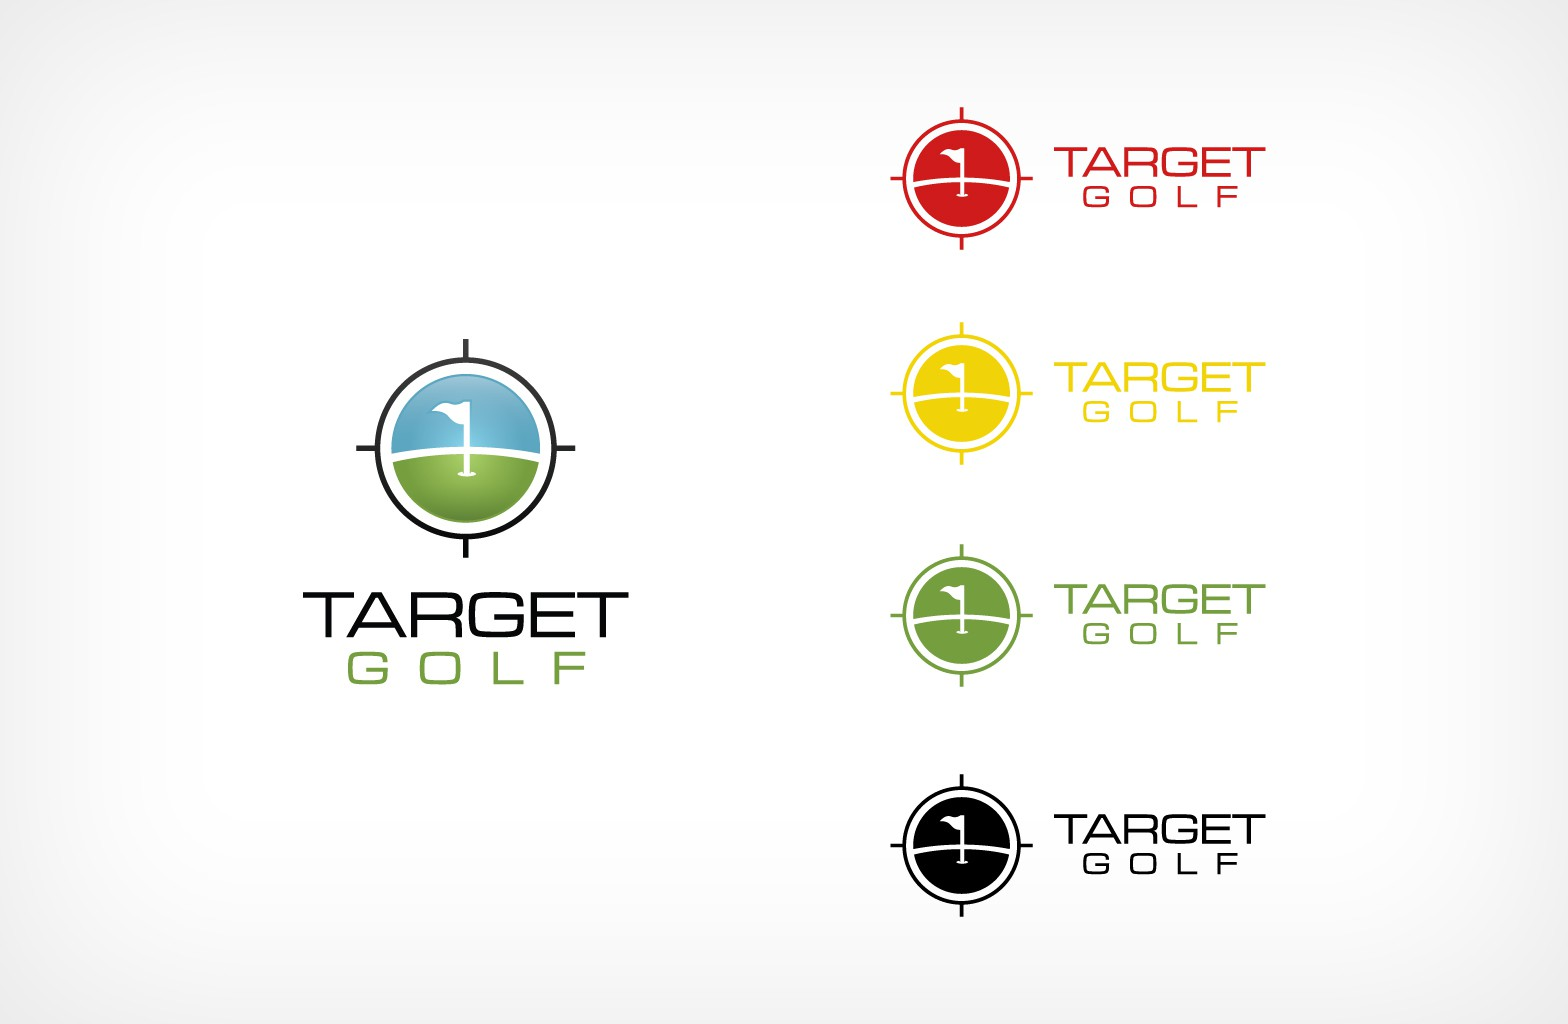 Help Target Golf with a new logo